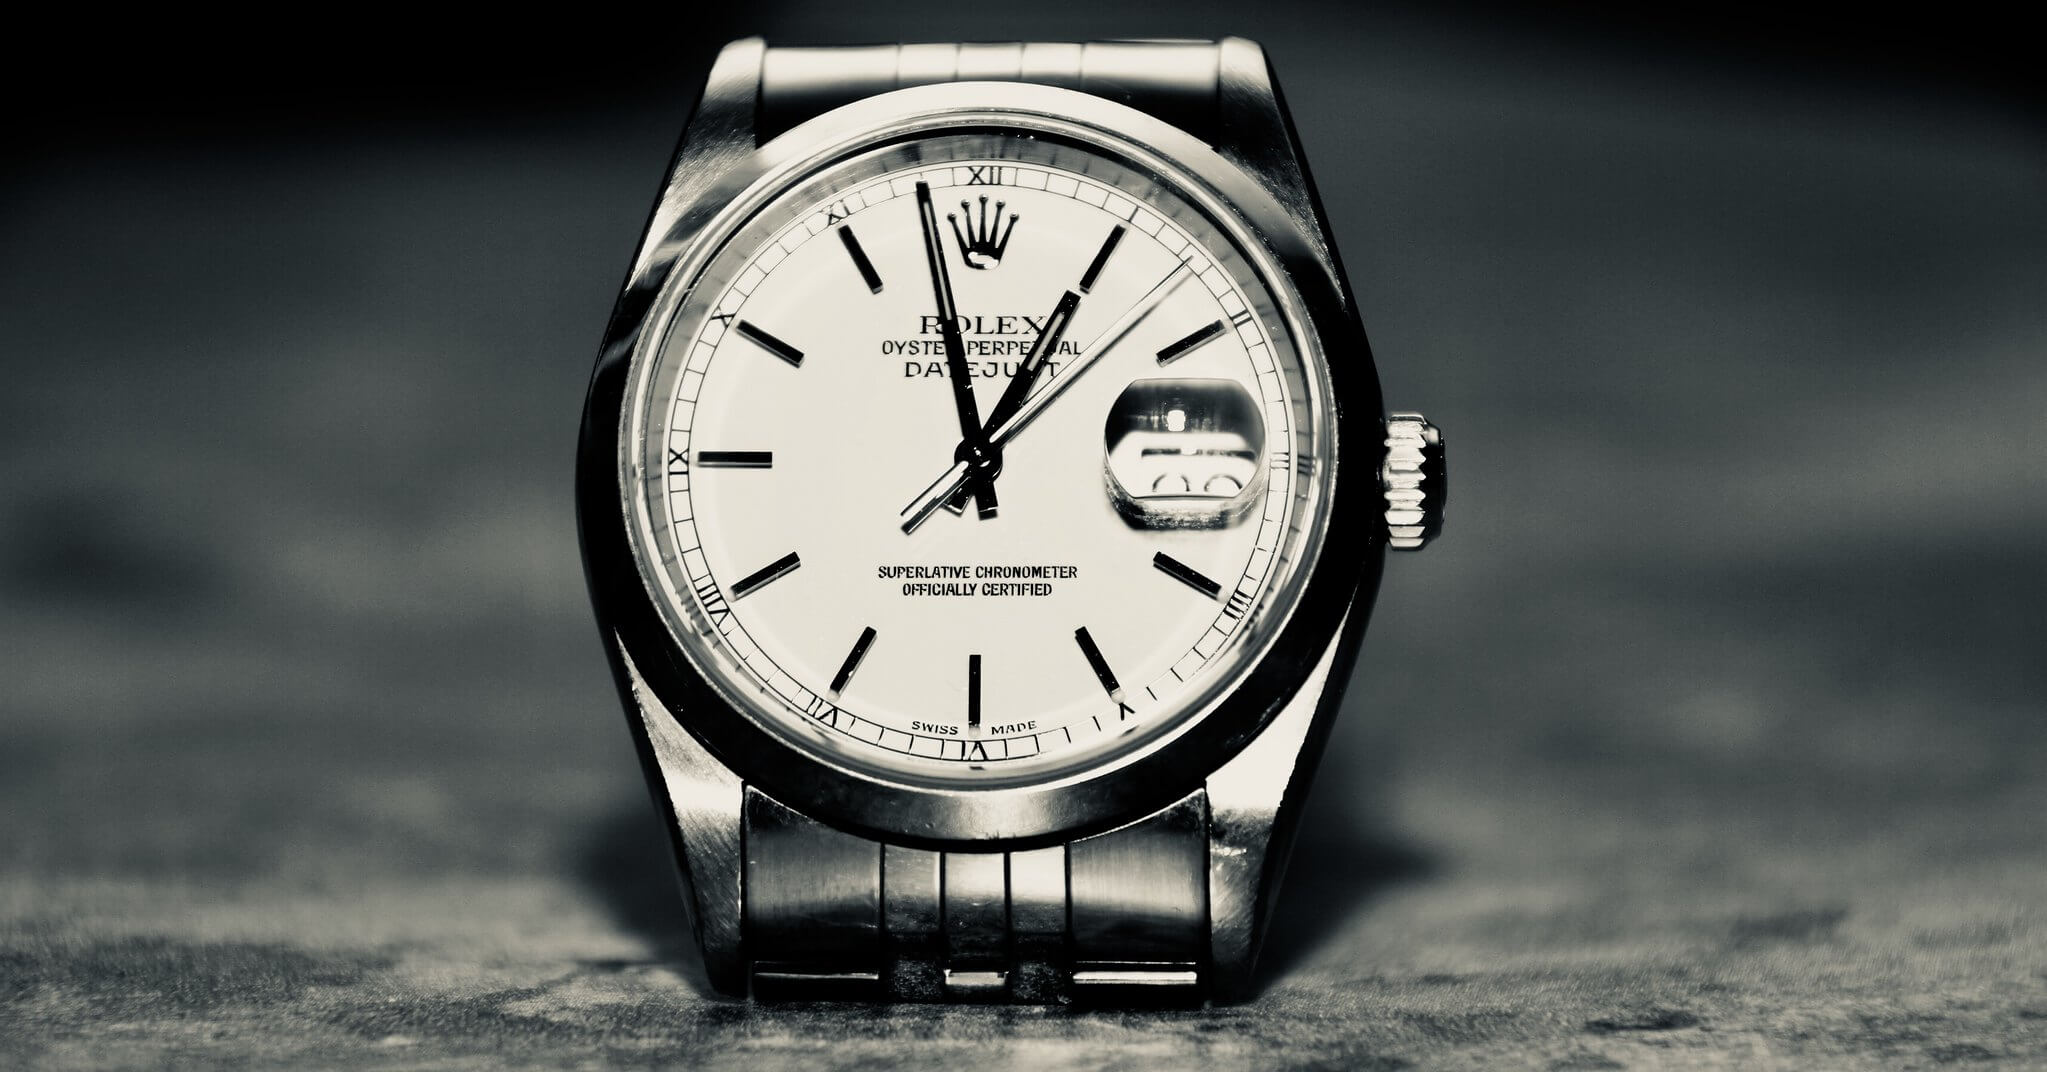 Rolex Datejust Replica watches